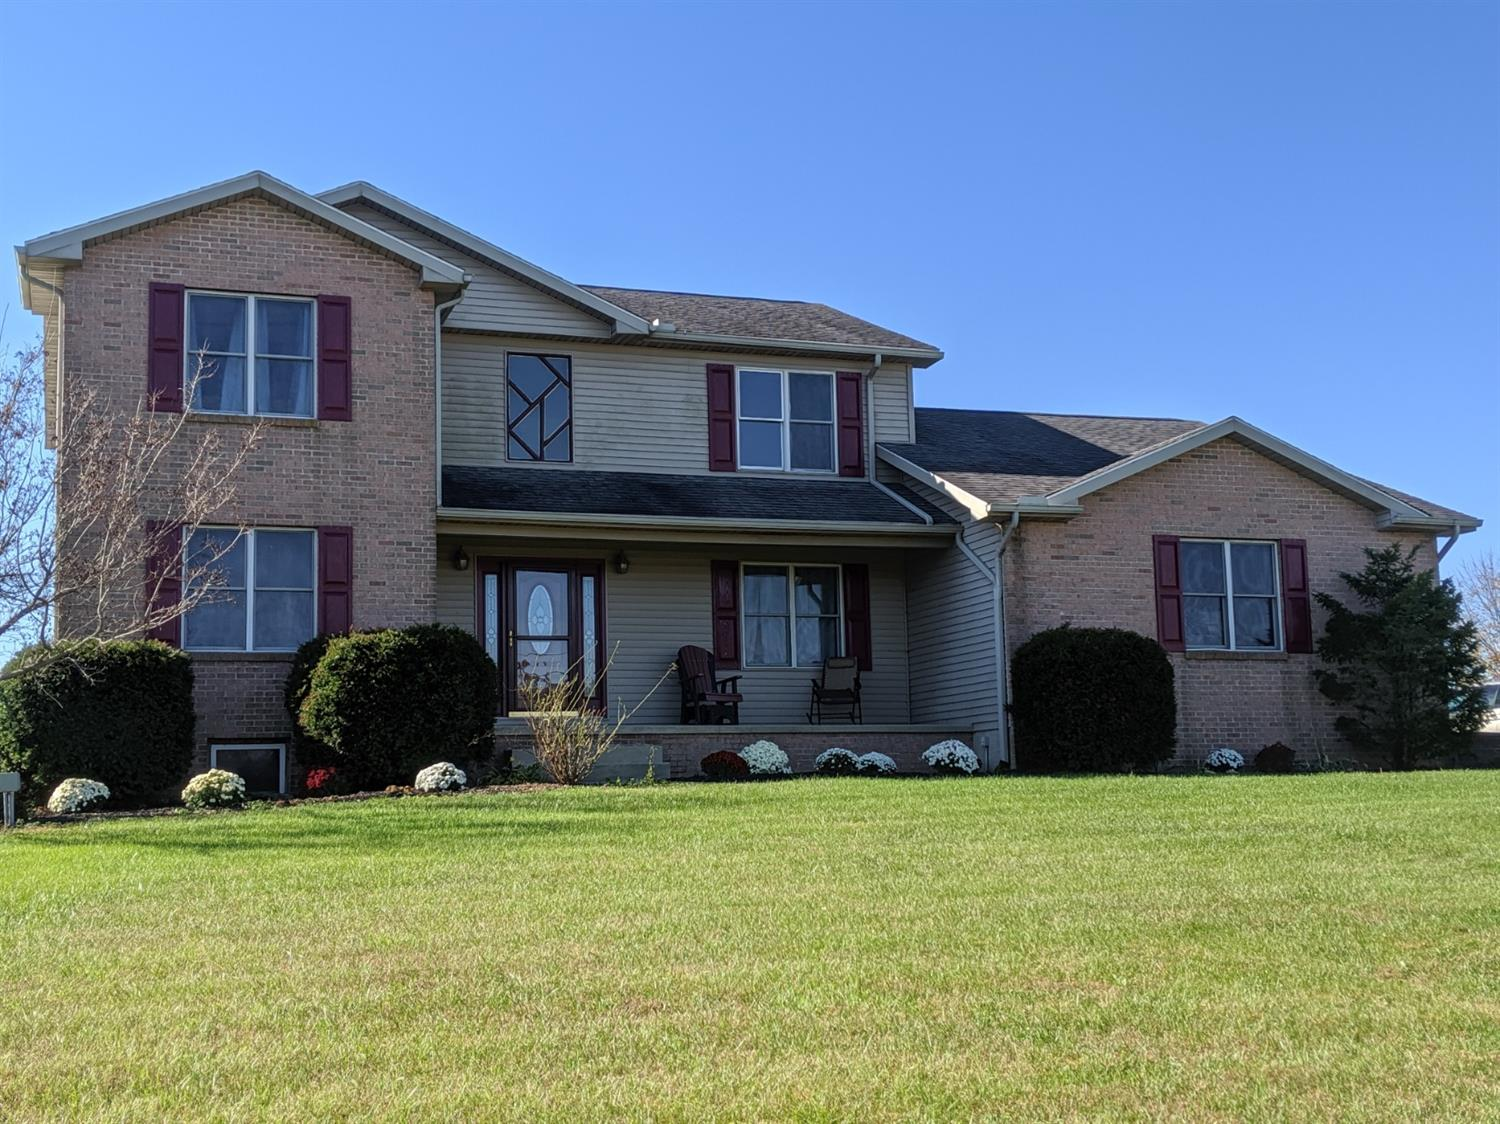 8206 St Rt 125 Jefferson Twp, OH